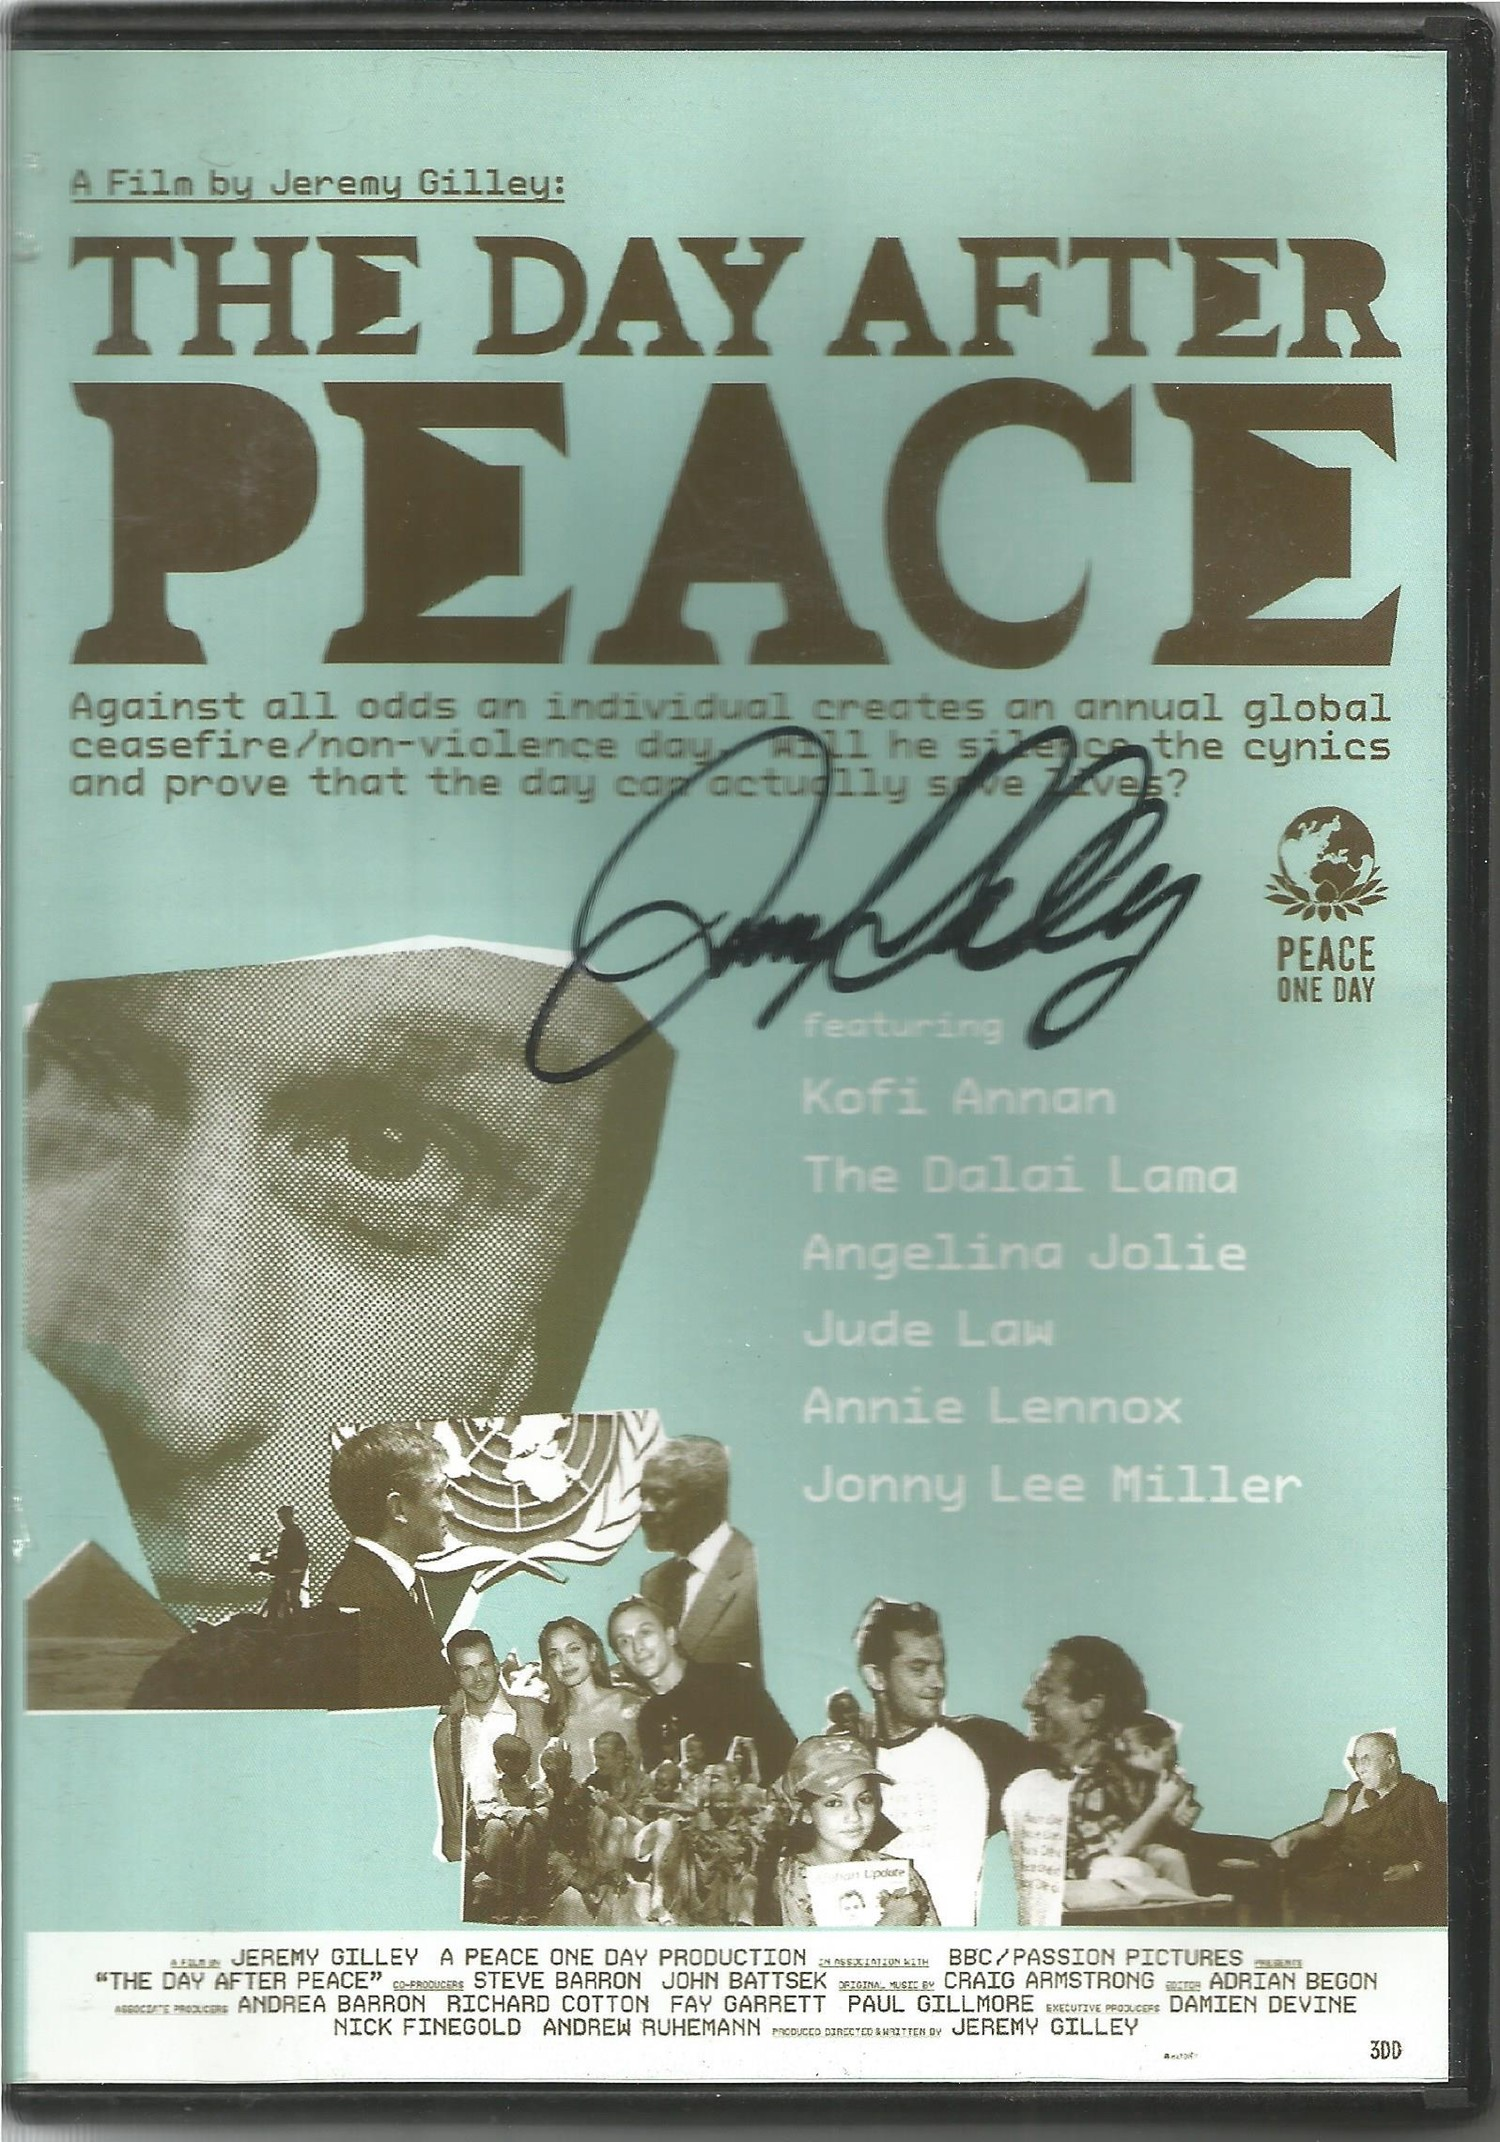 3 Signed and 2 Unsigned DVDs, Jimmy Buckley The Grand Tour, The Day After Peace, Dr Phil Hammonds - Image 2 of 2